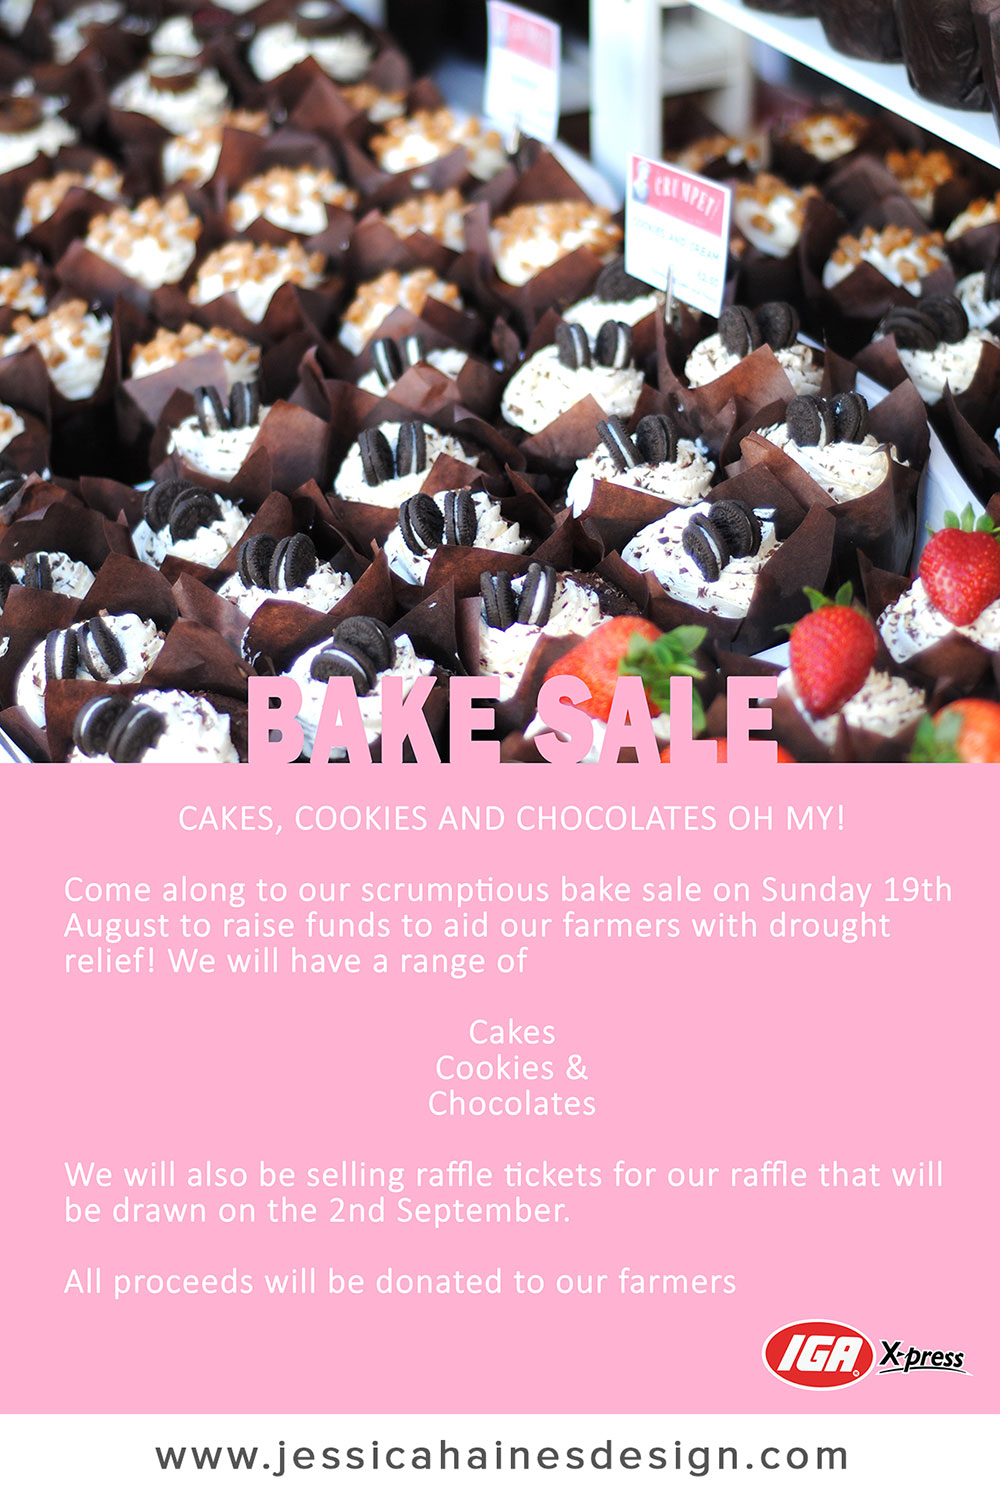 IGA XPress Drought Relief Fundraiser Bake Sale Poster